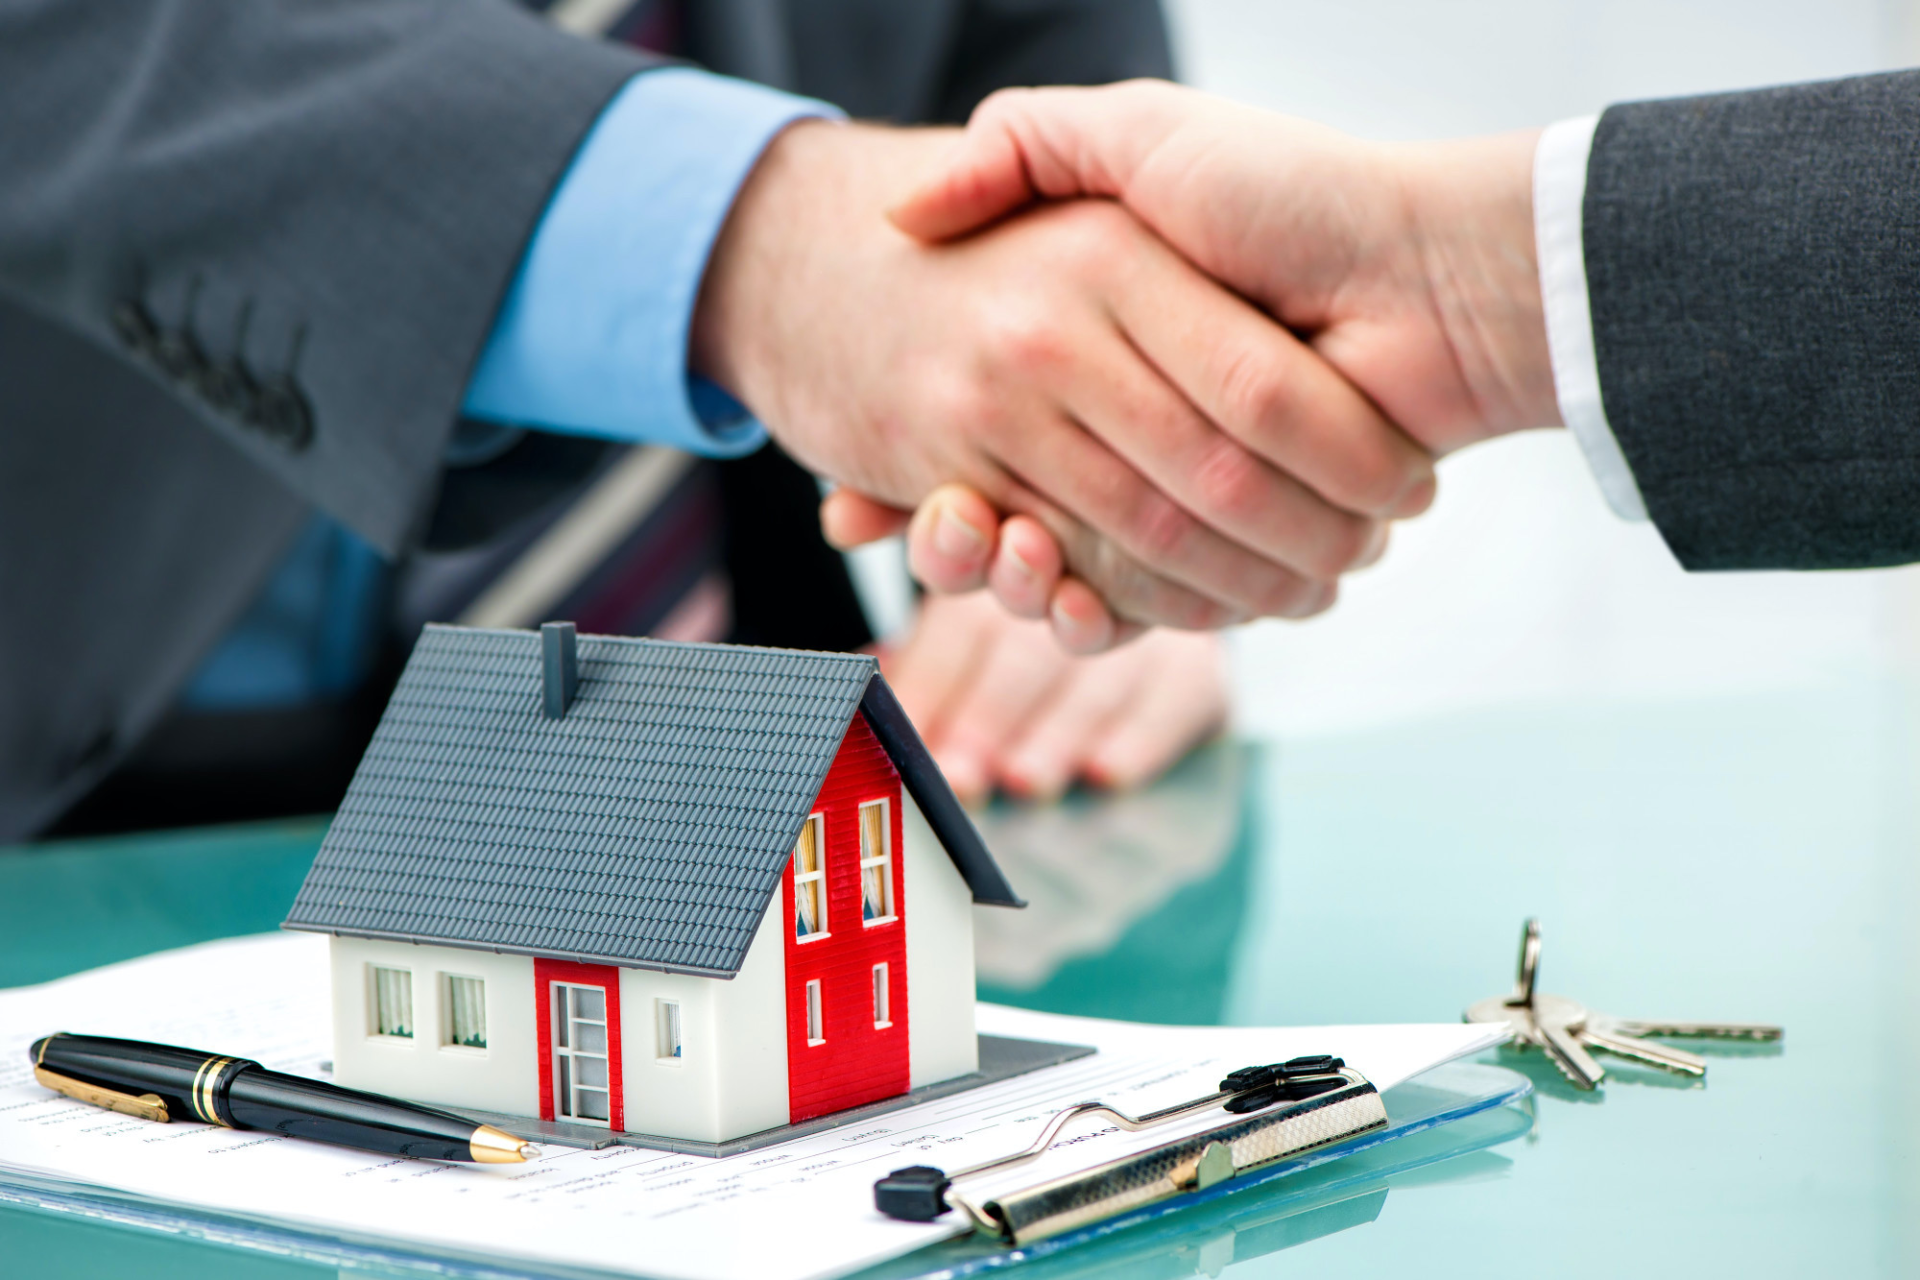 UNDERSTANDING PROPERTY INVESTMENT COMPANIES AND HOW THEY WORK